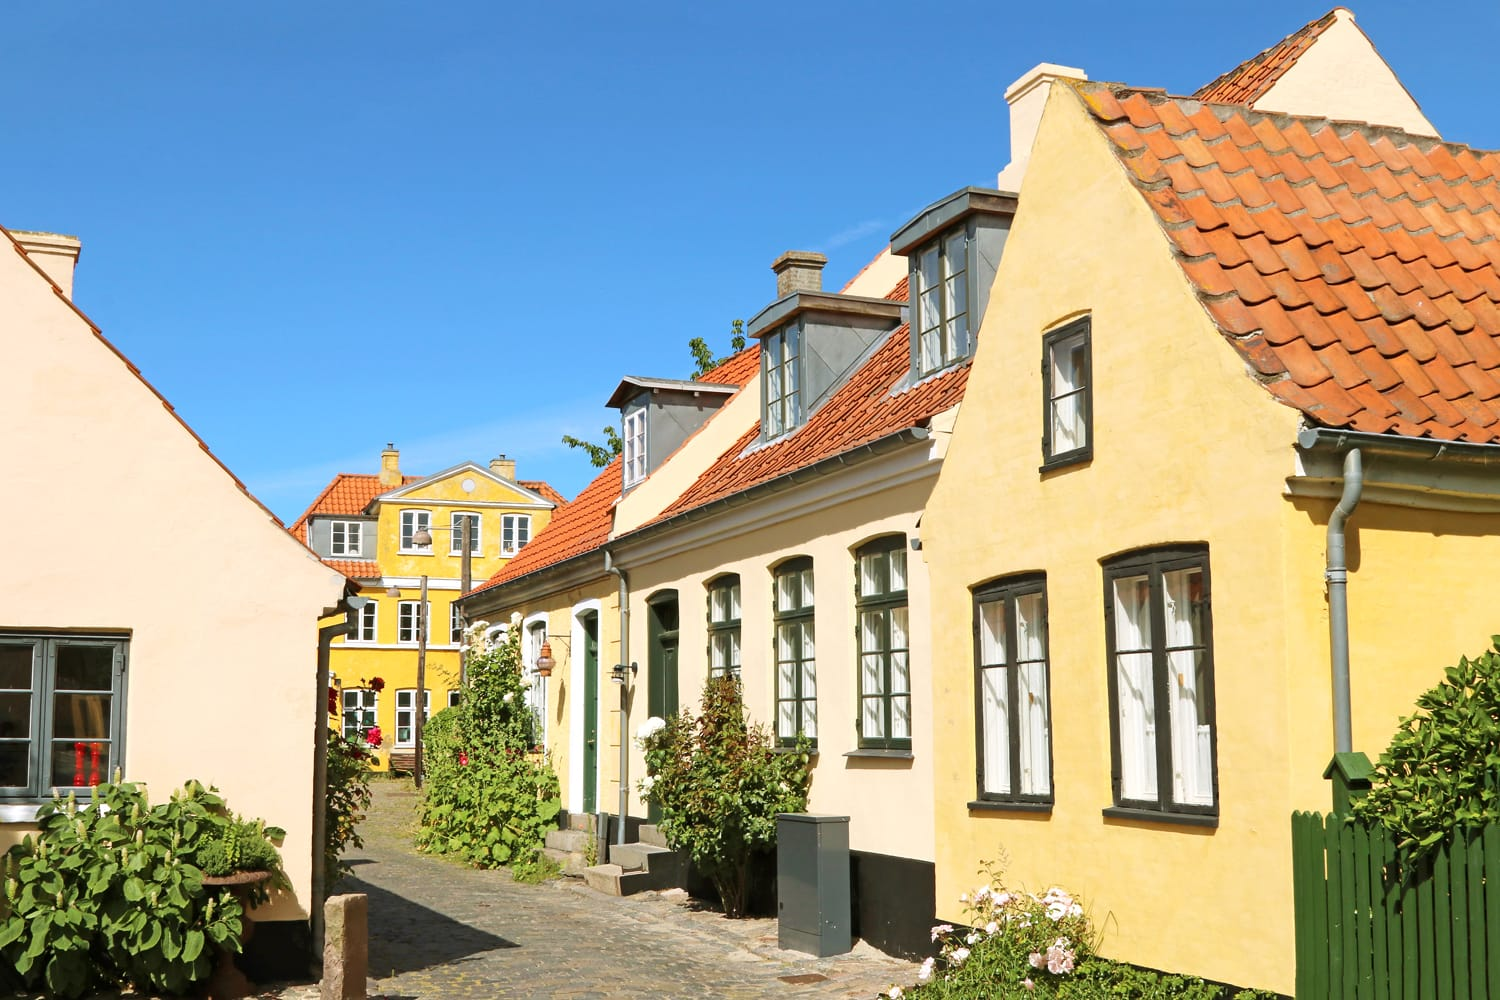 Cobbled street with yellow-painted houses in Dragor, Denmark